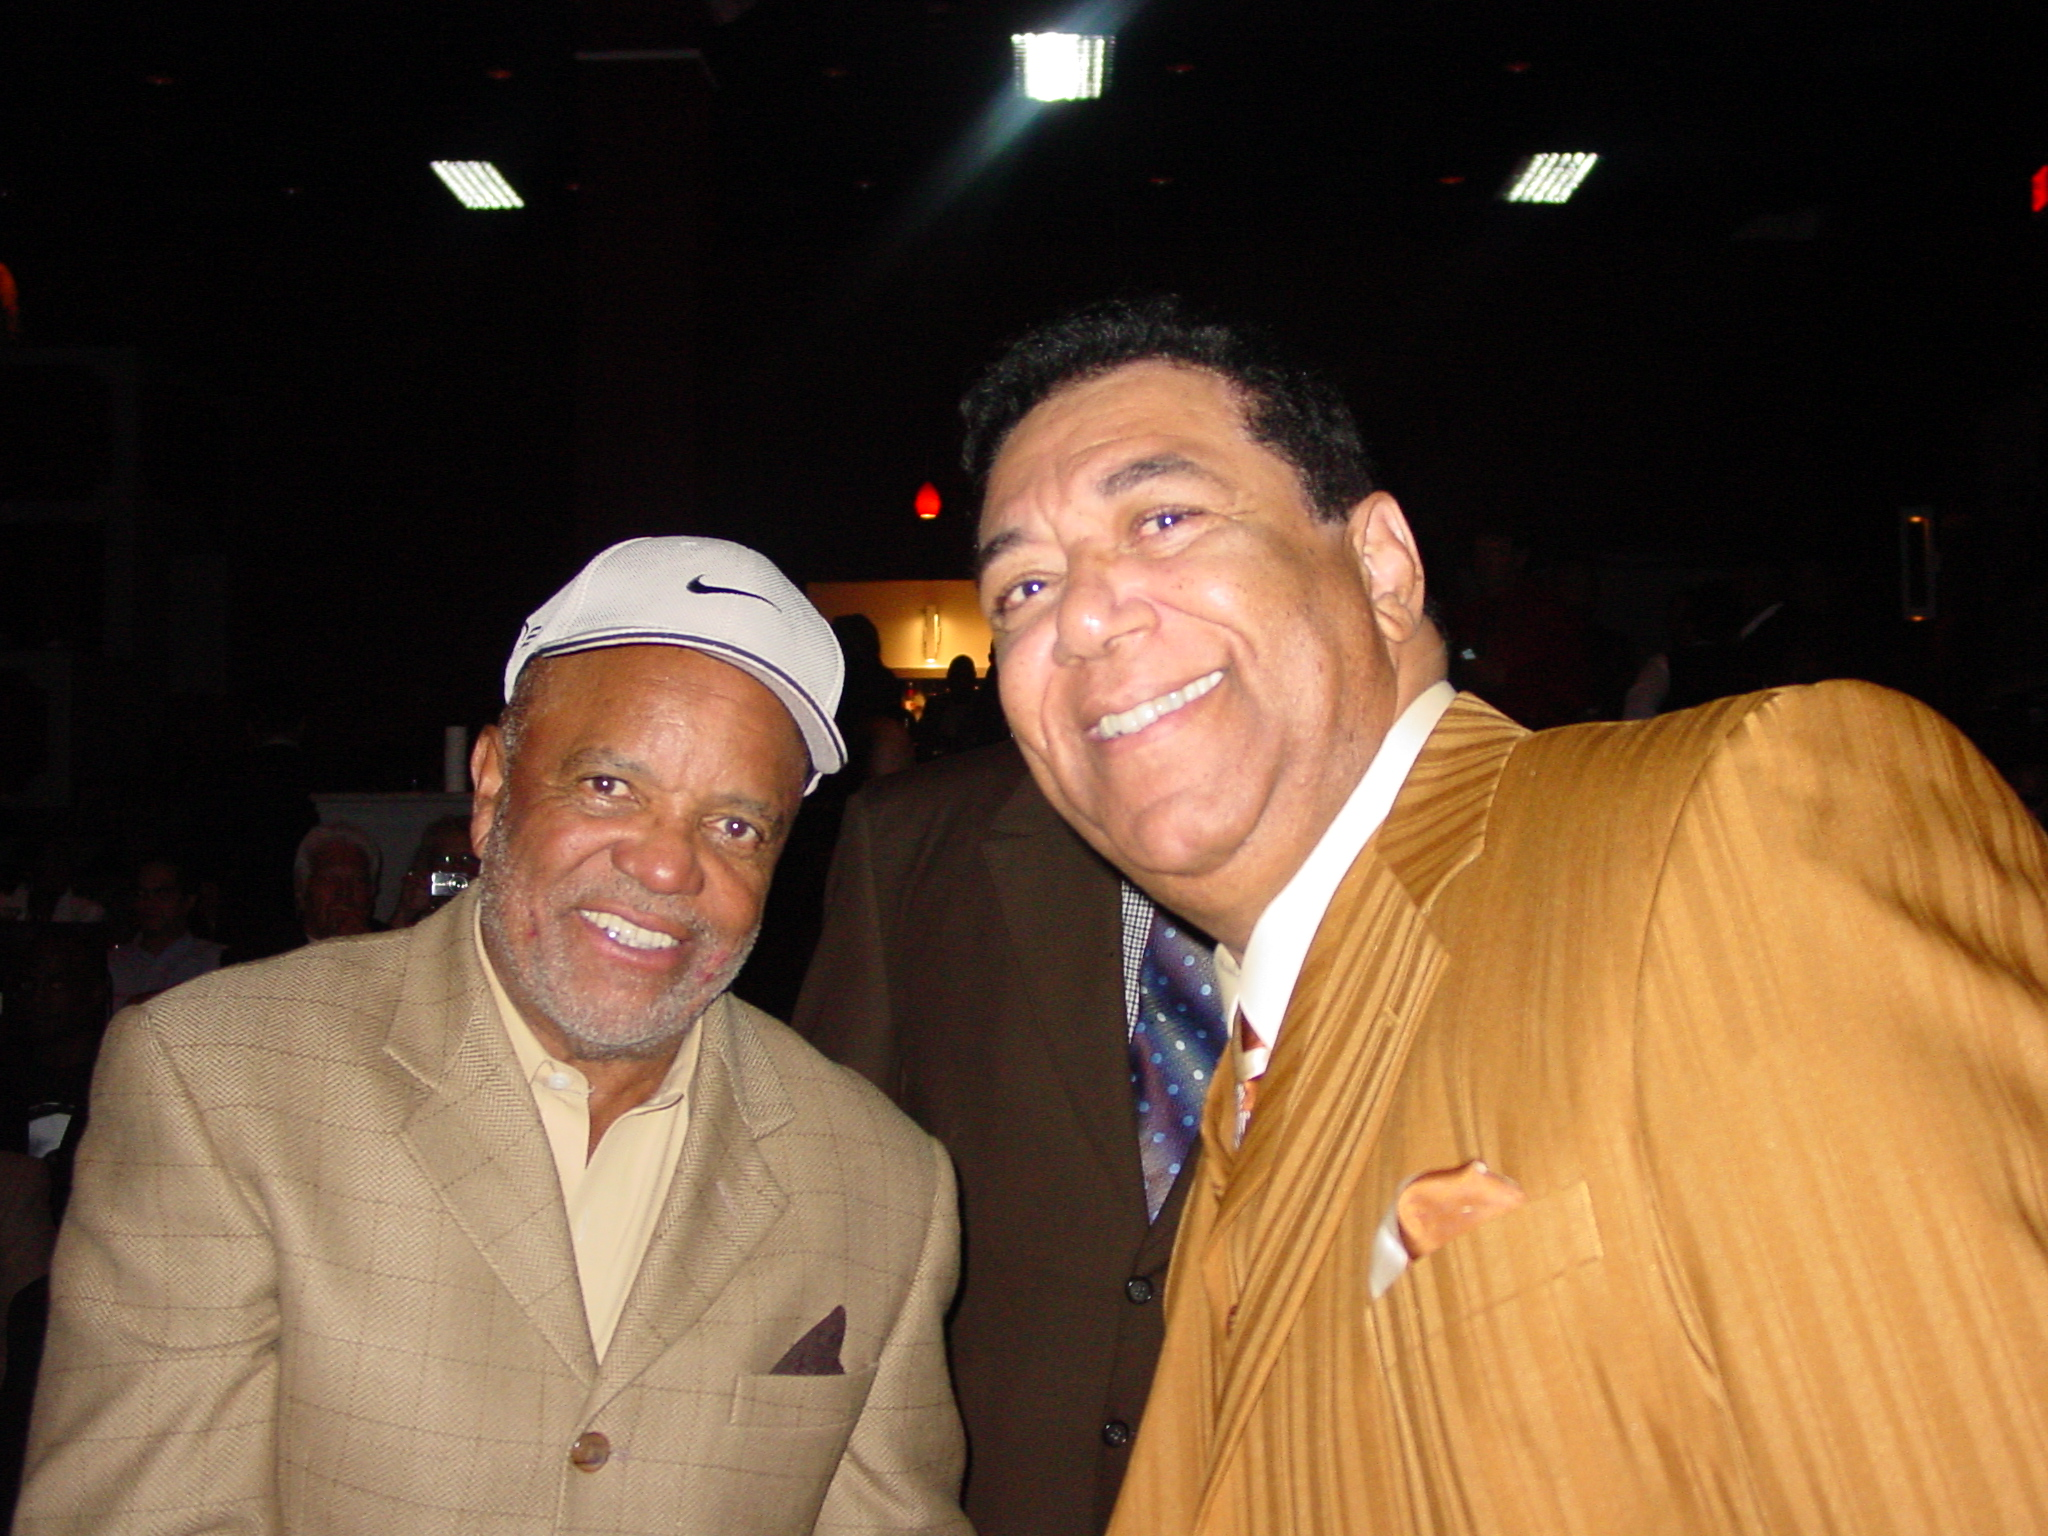 Terry & Barry Gordy Jr. at the Jam Session at the Motown Gala